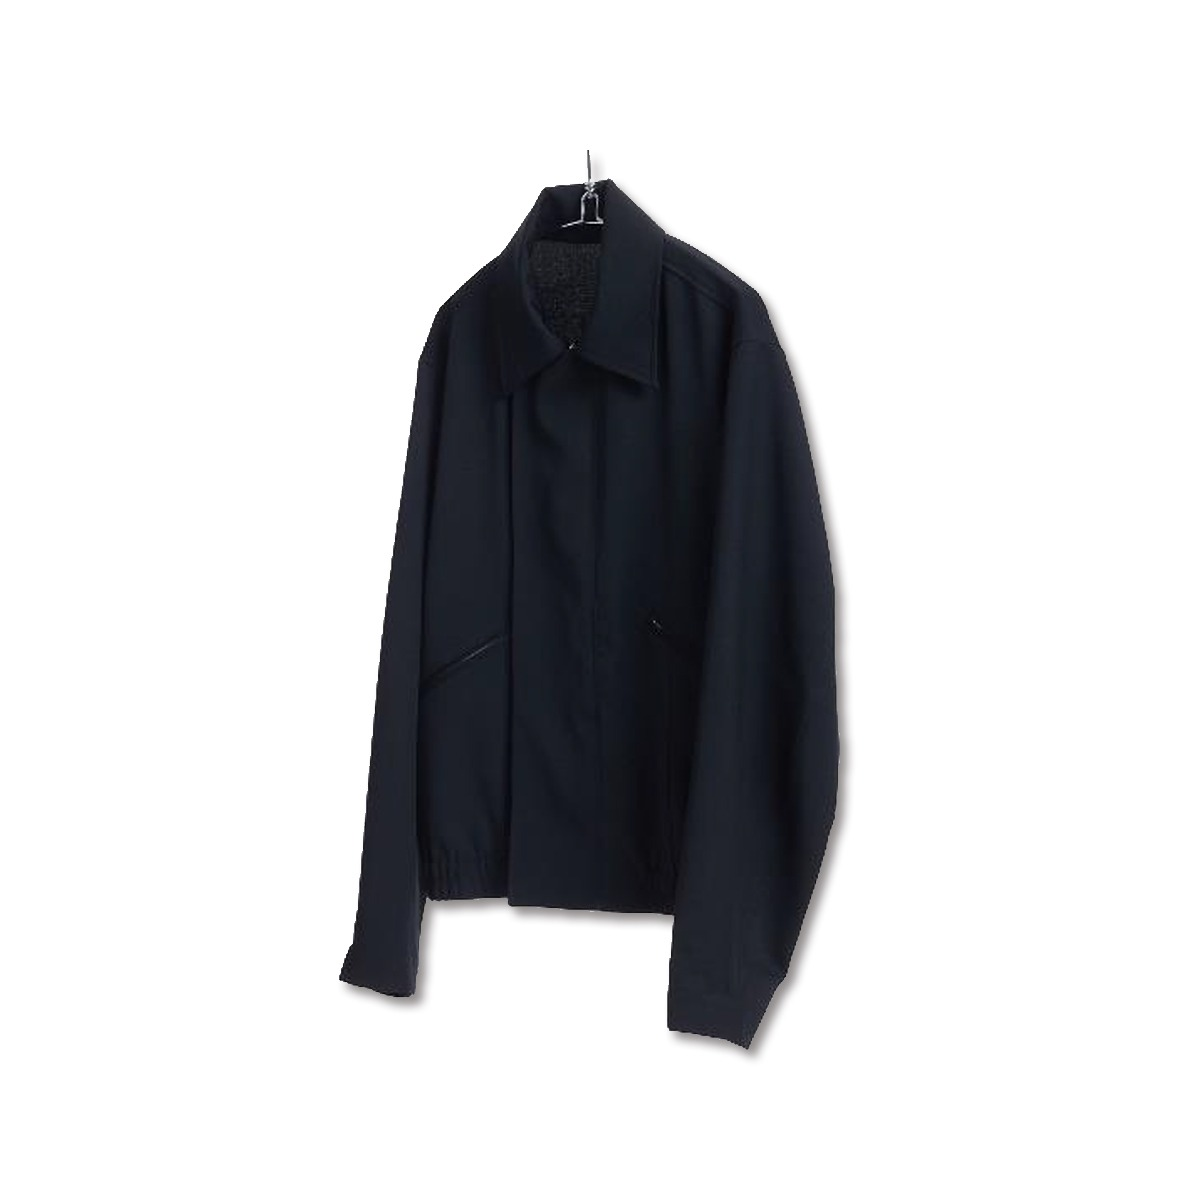 [YOUTH] MK3 JACKET 'BLACK'